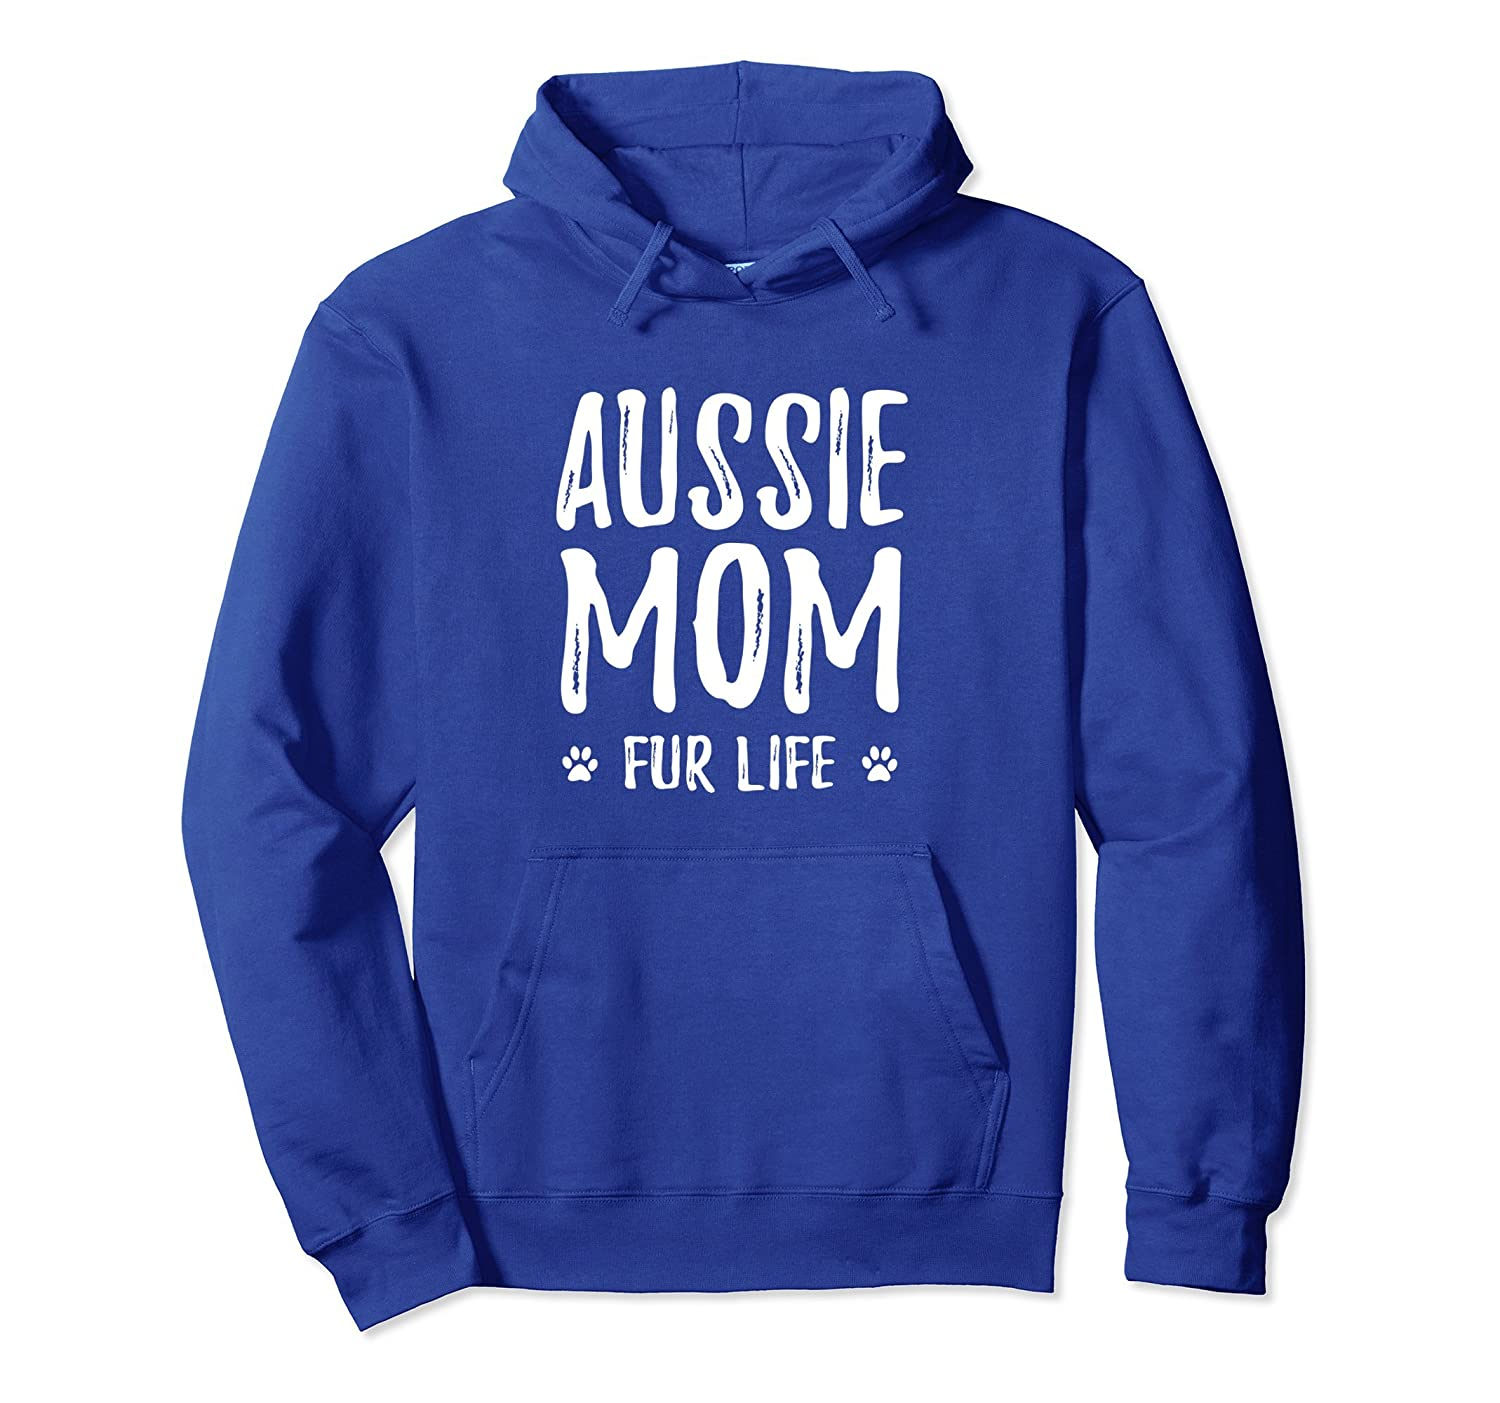 Aussie Mom Fur Life Hoodie for Aussie Shepherd Dog Mom-AZP